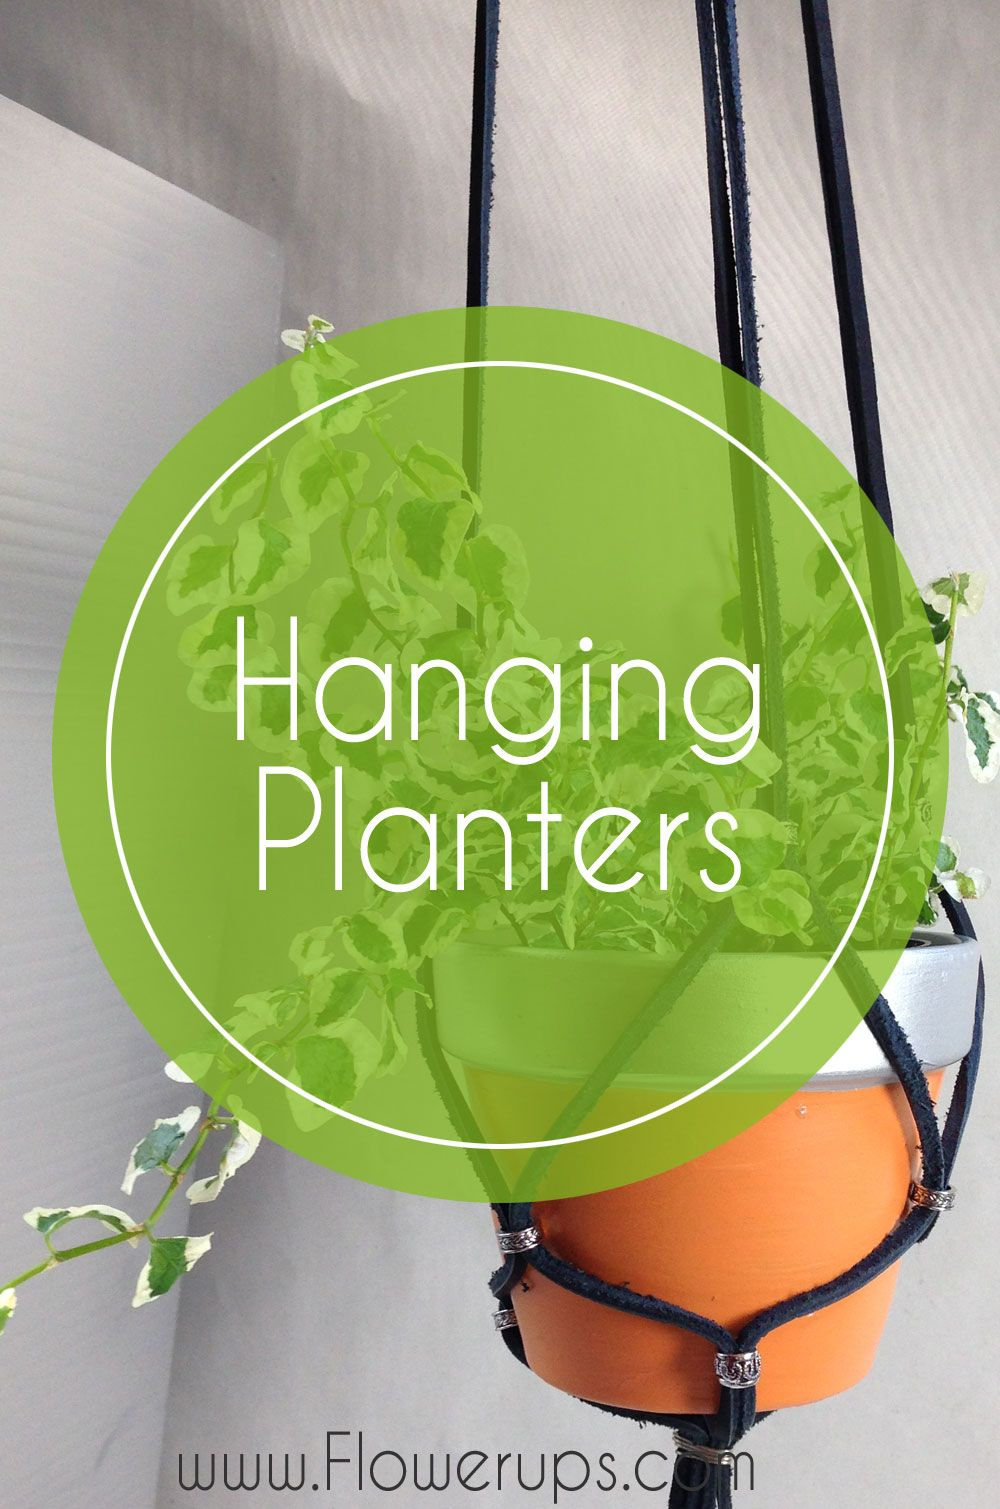 Hanging planters, Caring for hanging plants, house plants, indoor decor, green thumb, indoor gardening